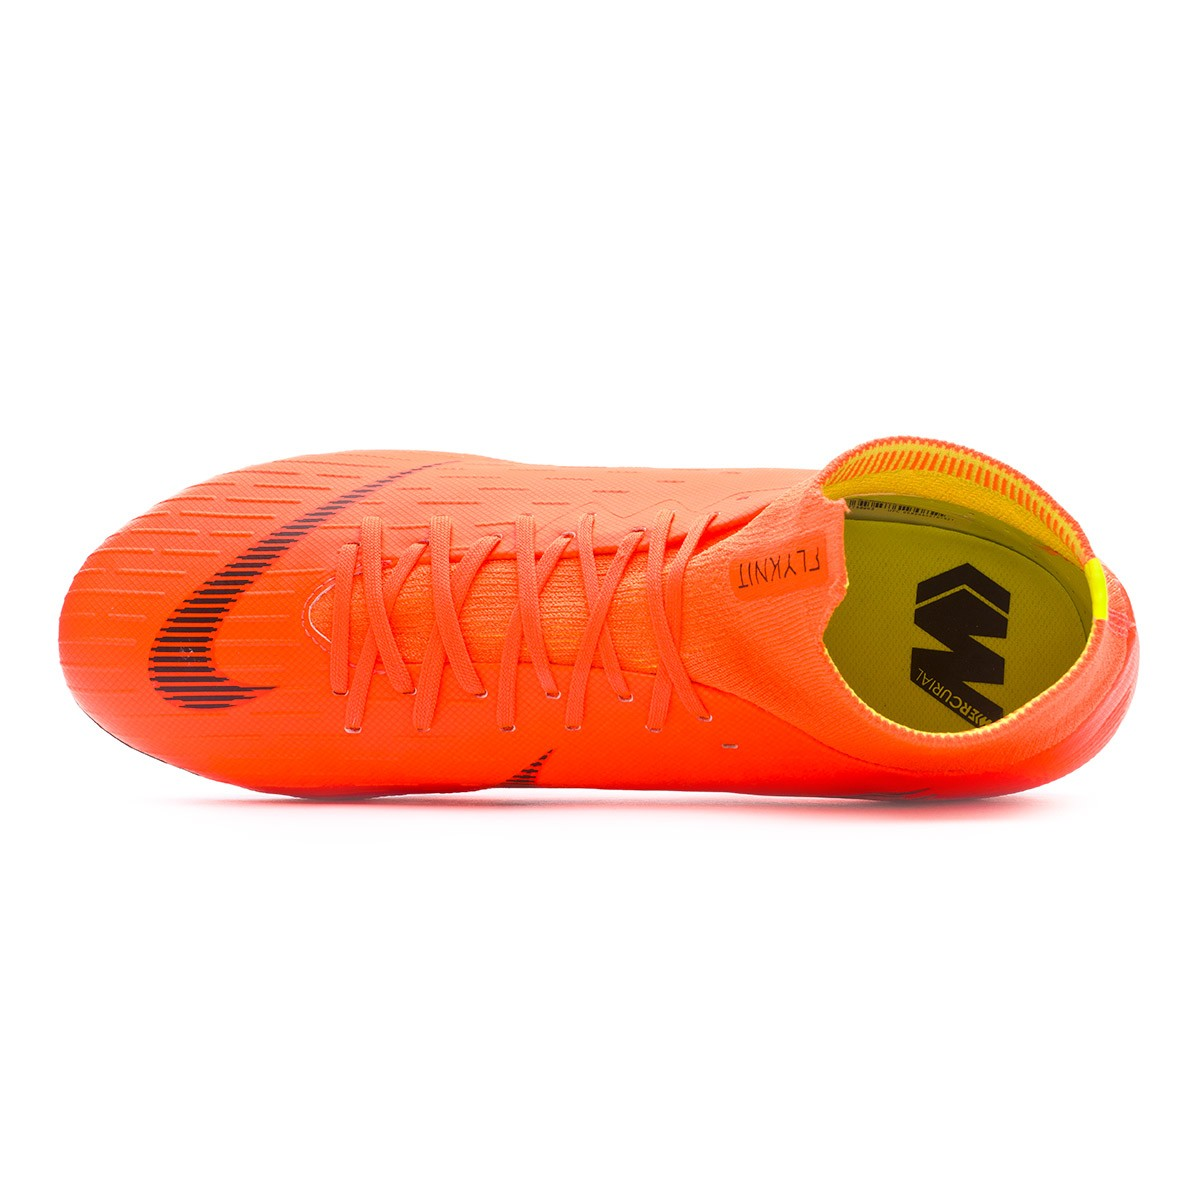 eed9a37e0 Scarpe Nike Mercurial Superfly VI Pro AG-Pro Total orange-Black-Volt -  Negozio di calcio Fútbol Emotion